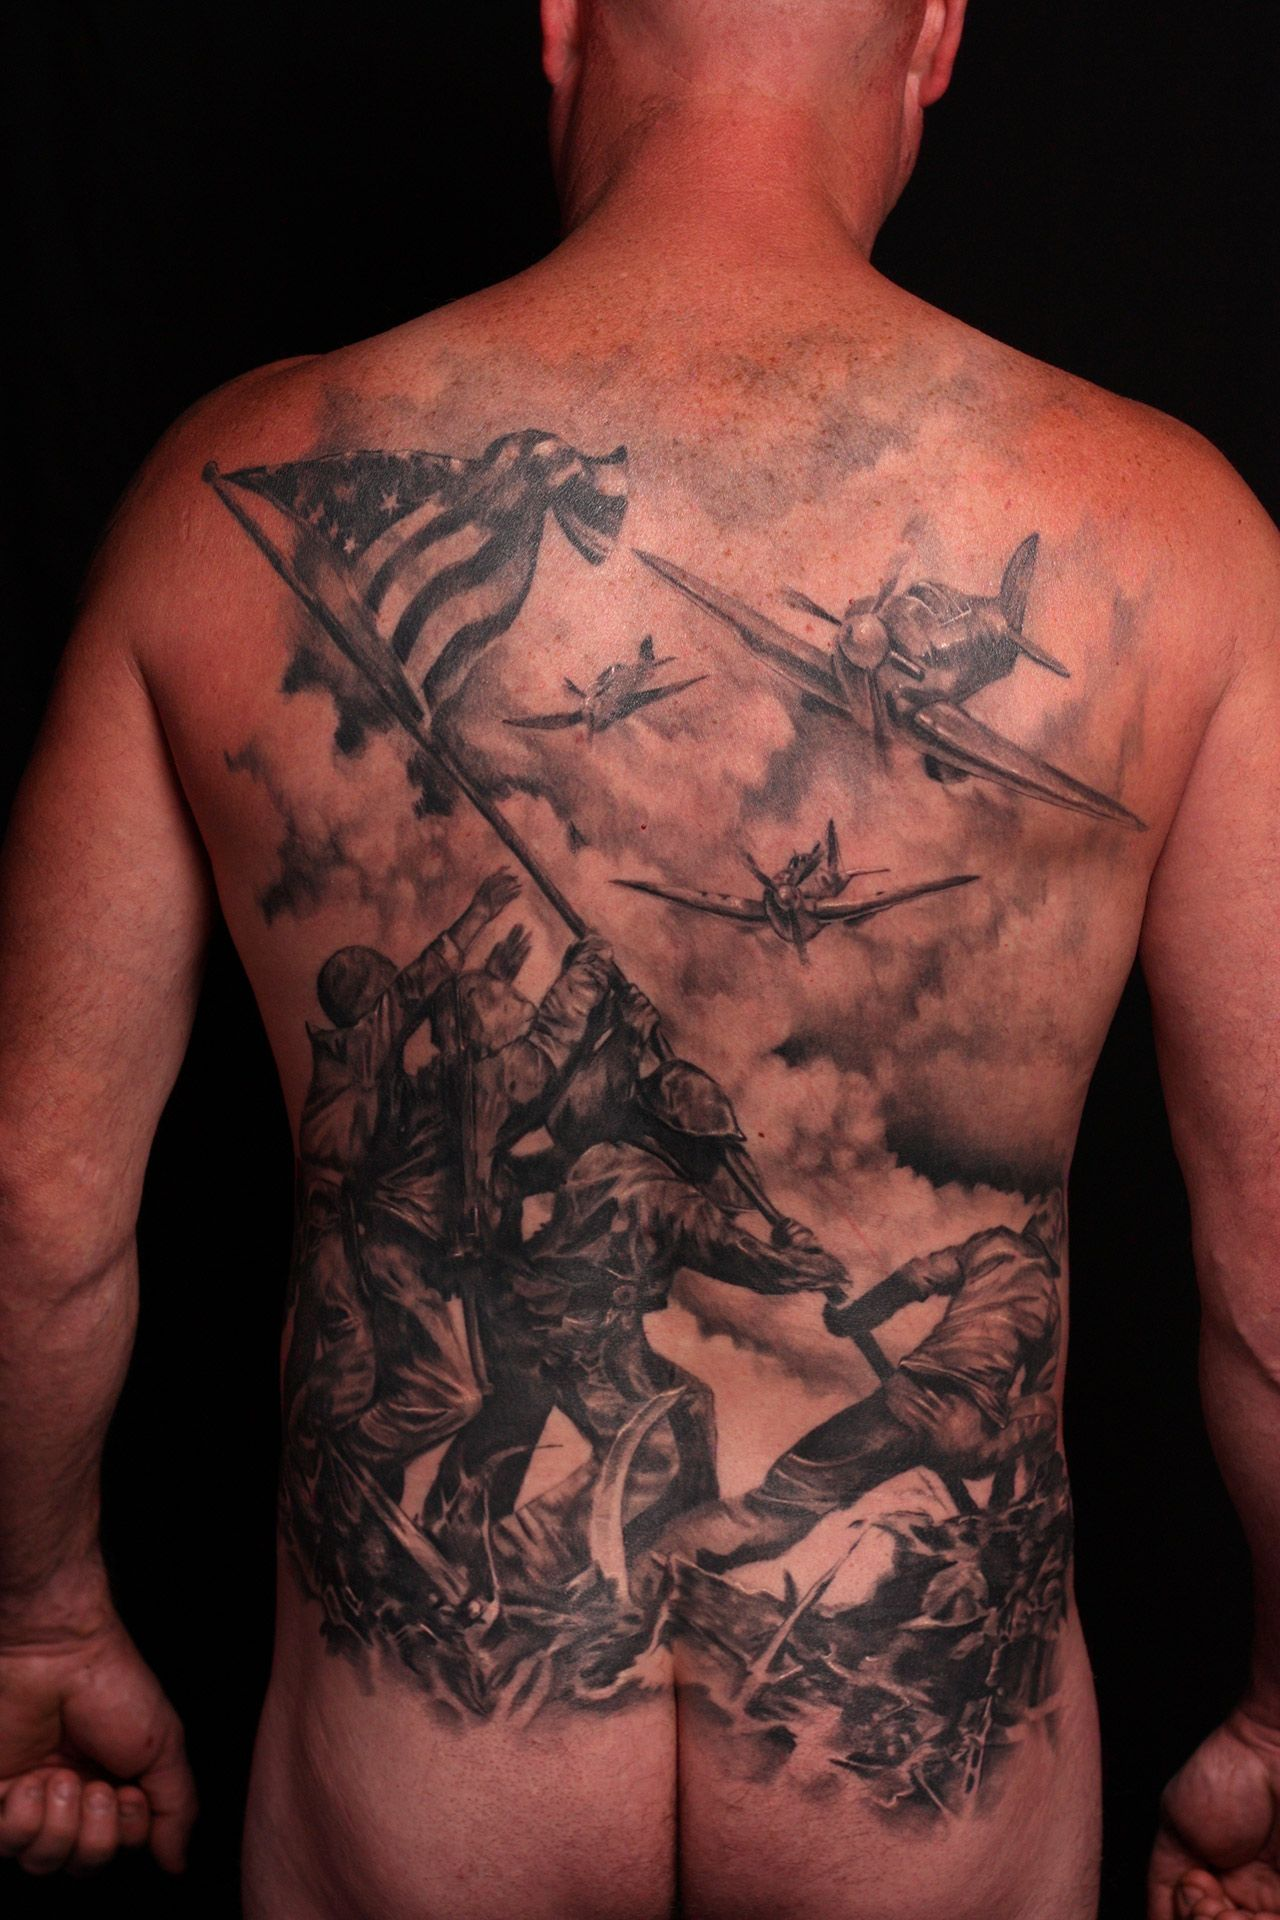 1956 chevy tattoo submited images pic2fly - Bad Ass Back Tattoo Marines Iwo Jima